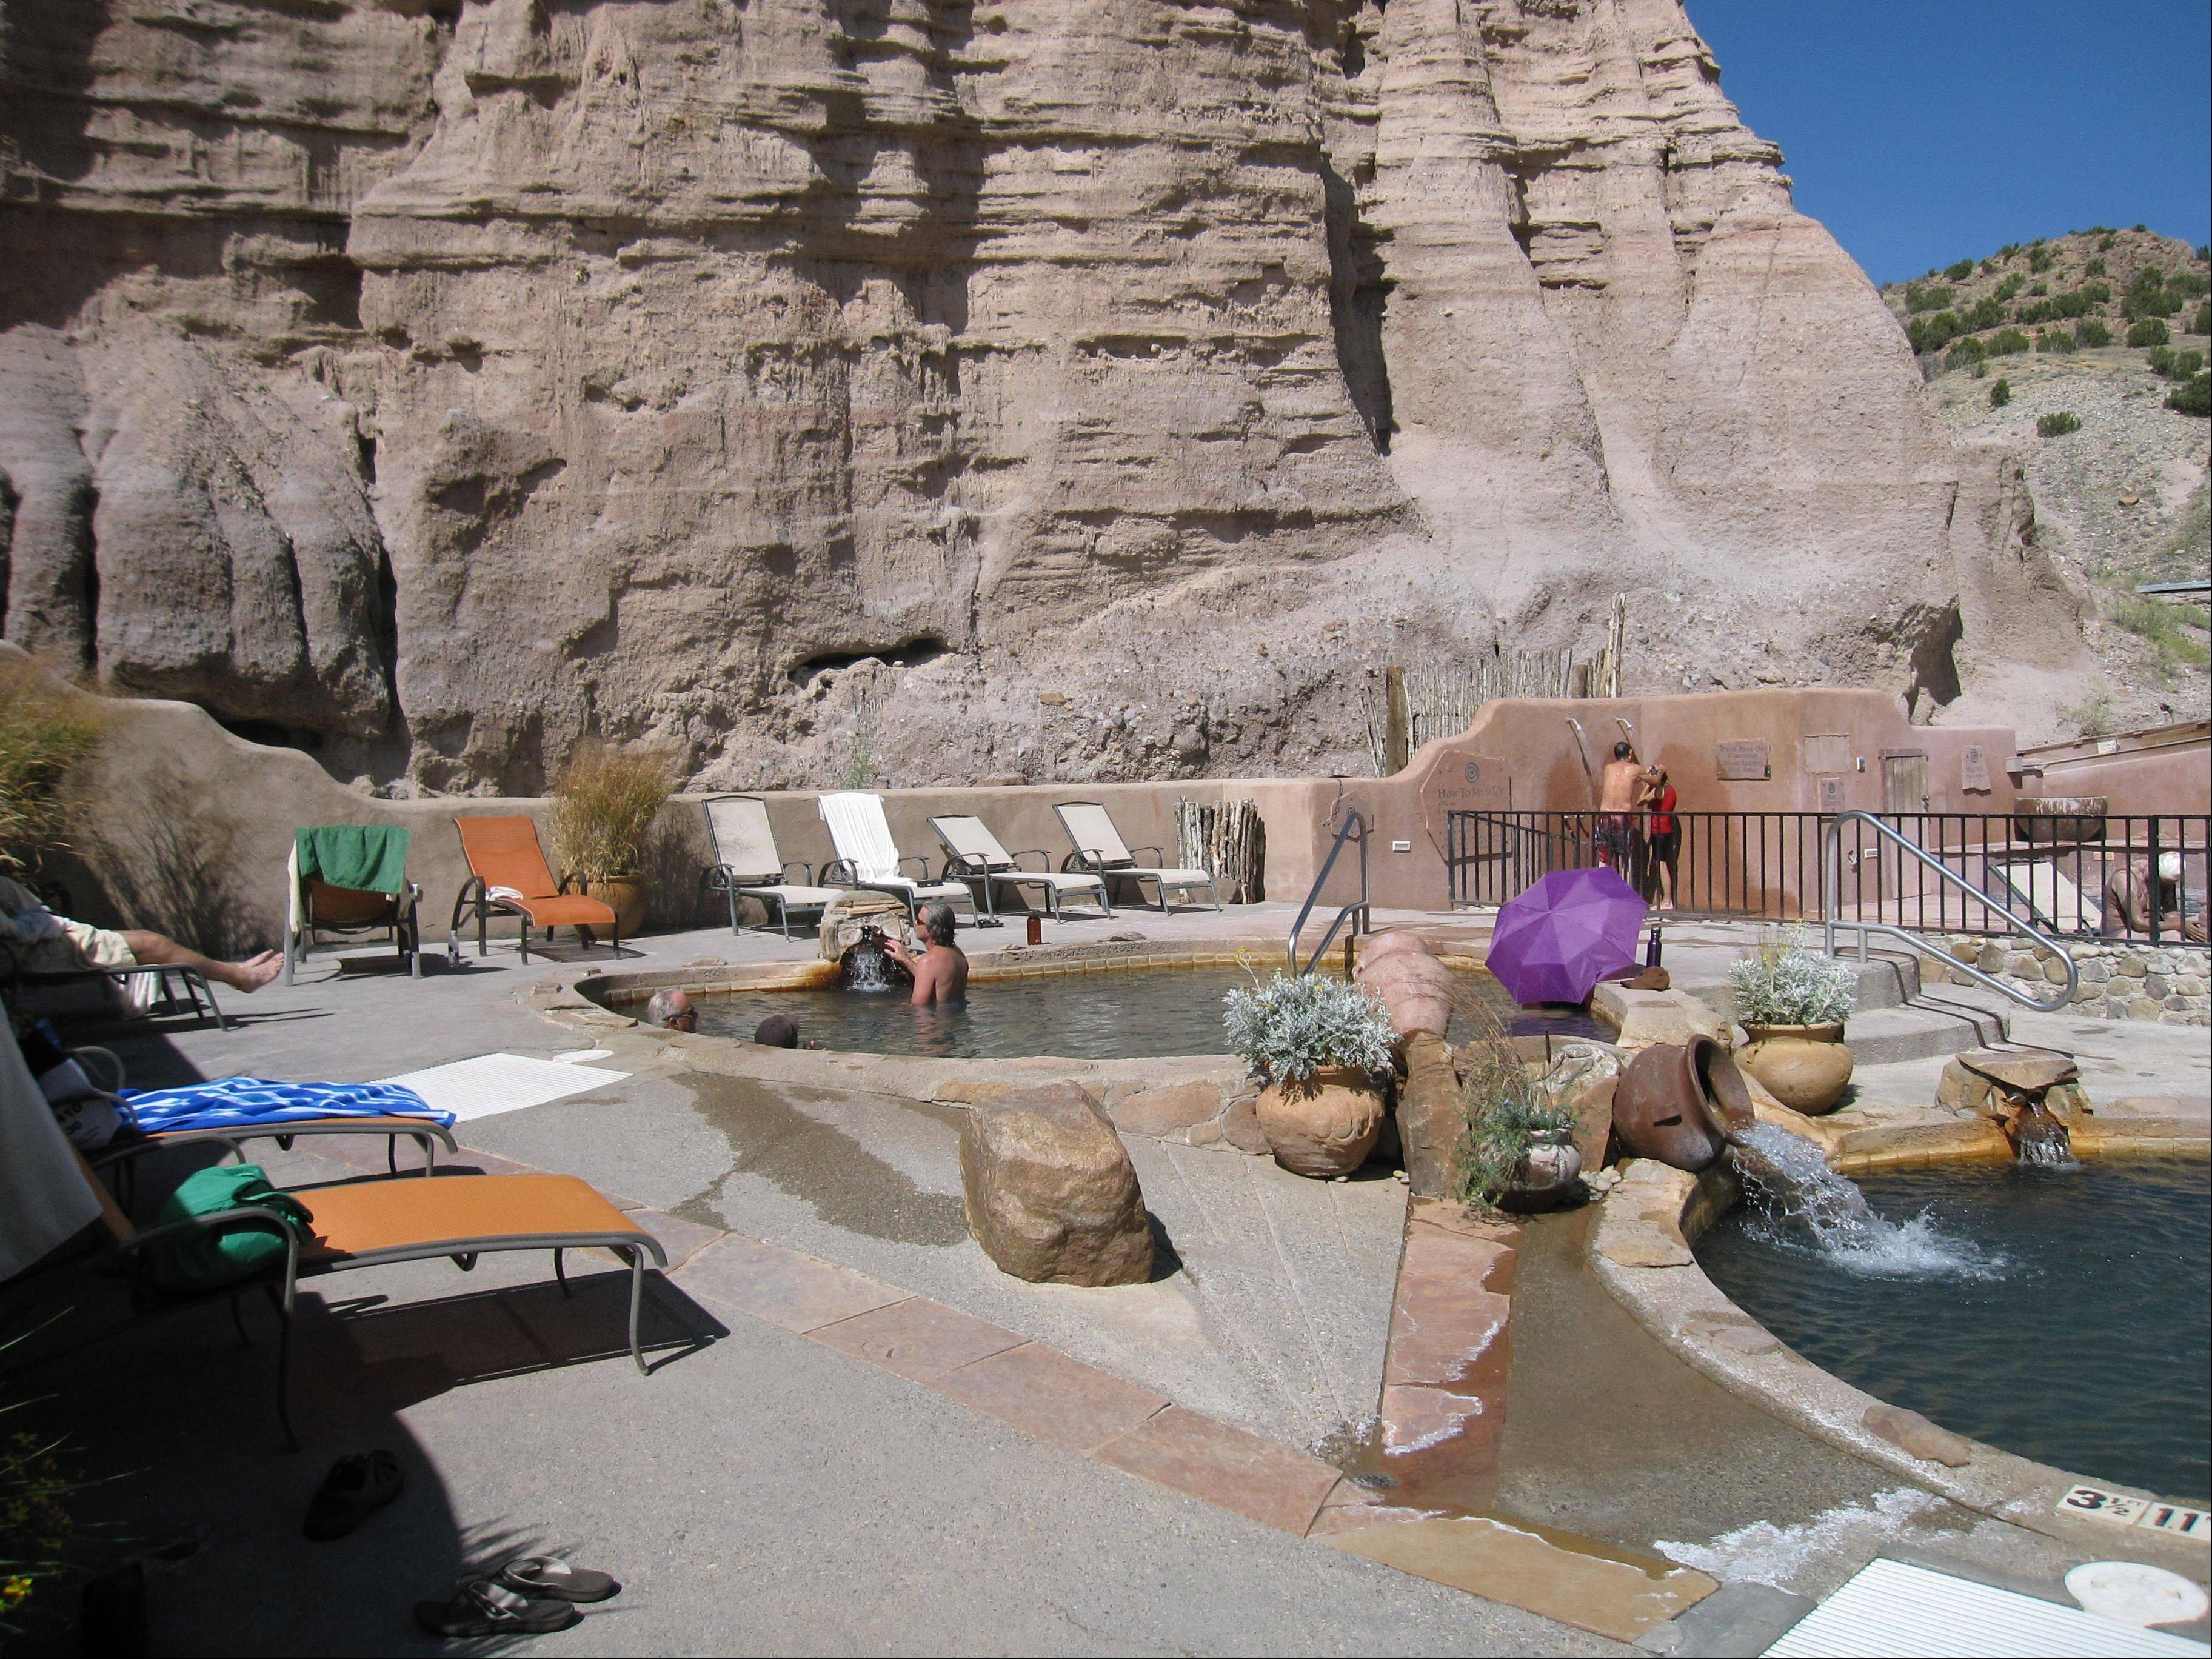 Ojo Caliente is a natural hot springs attraction in New Mexico.